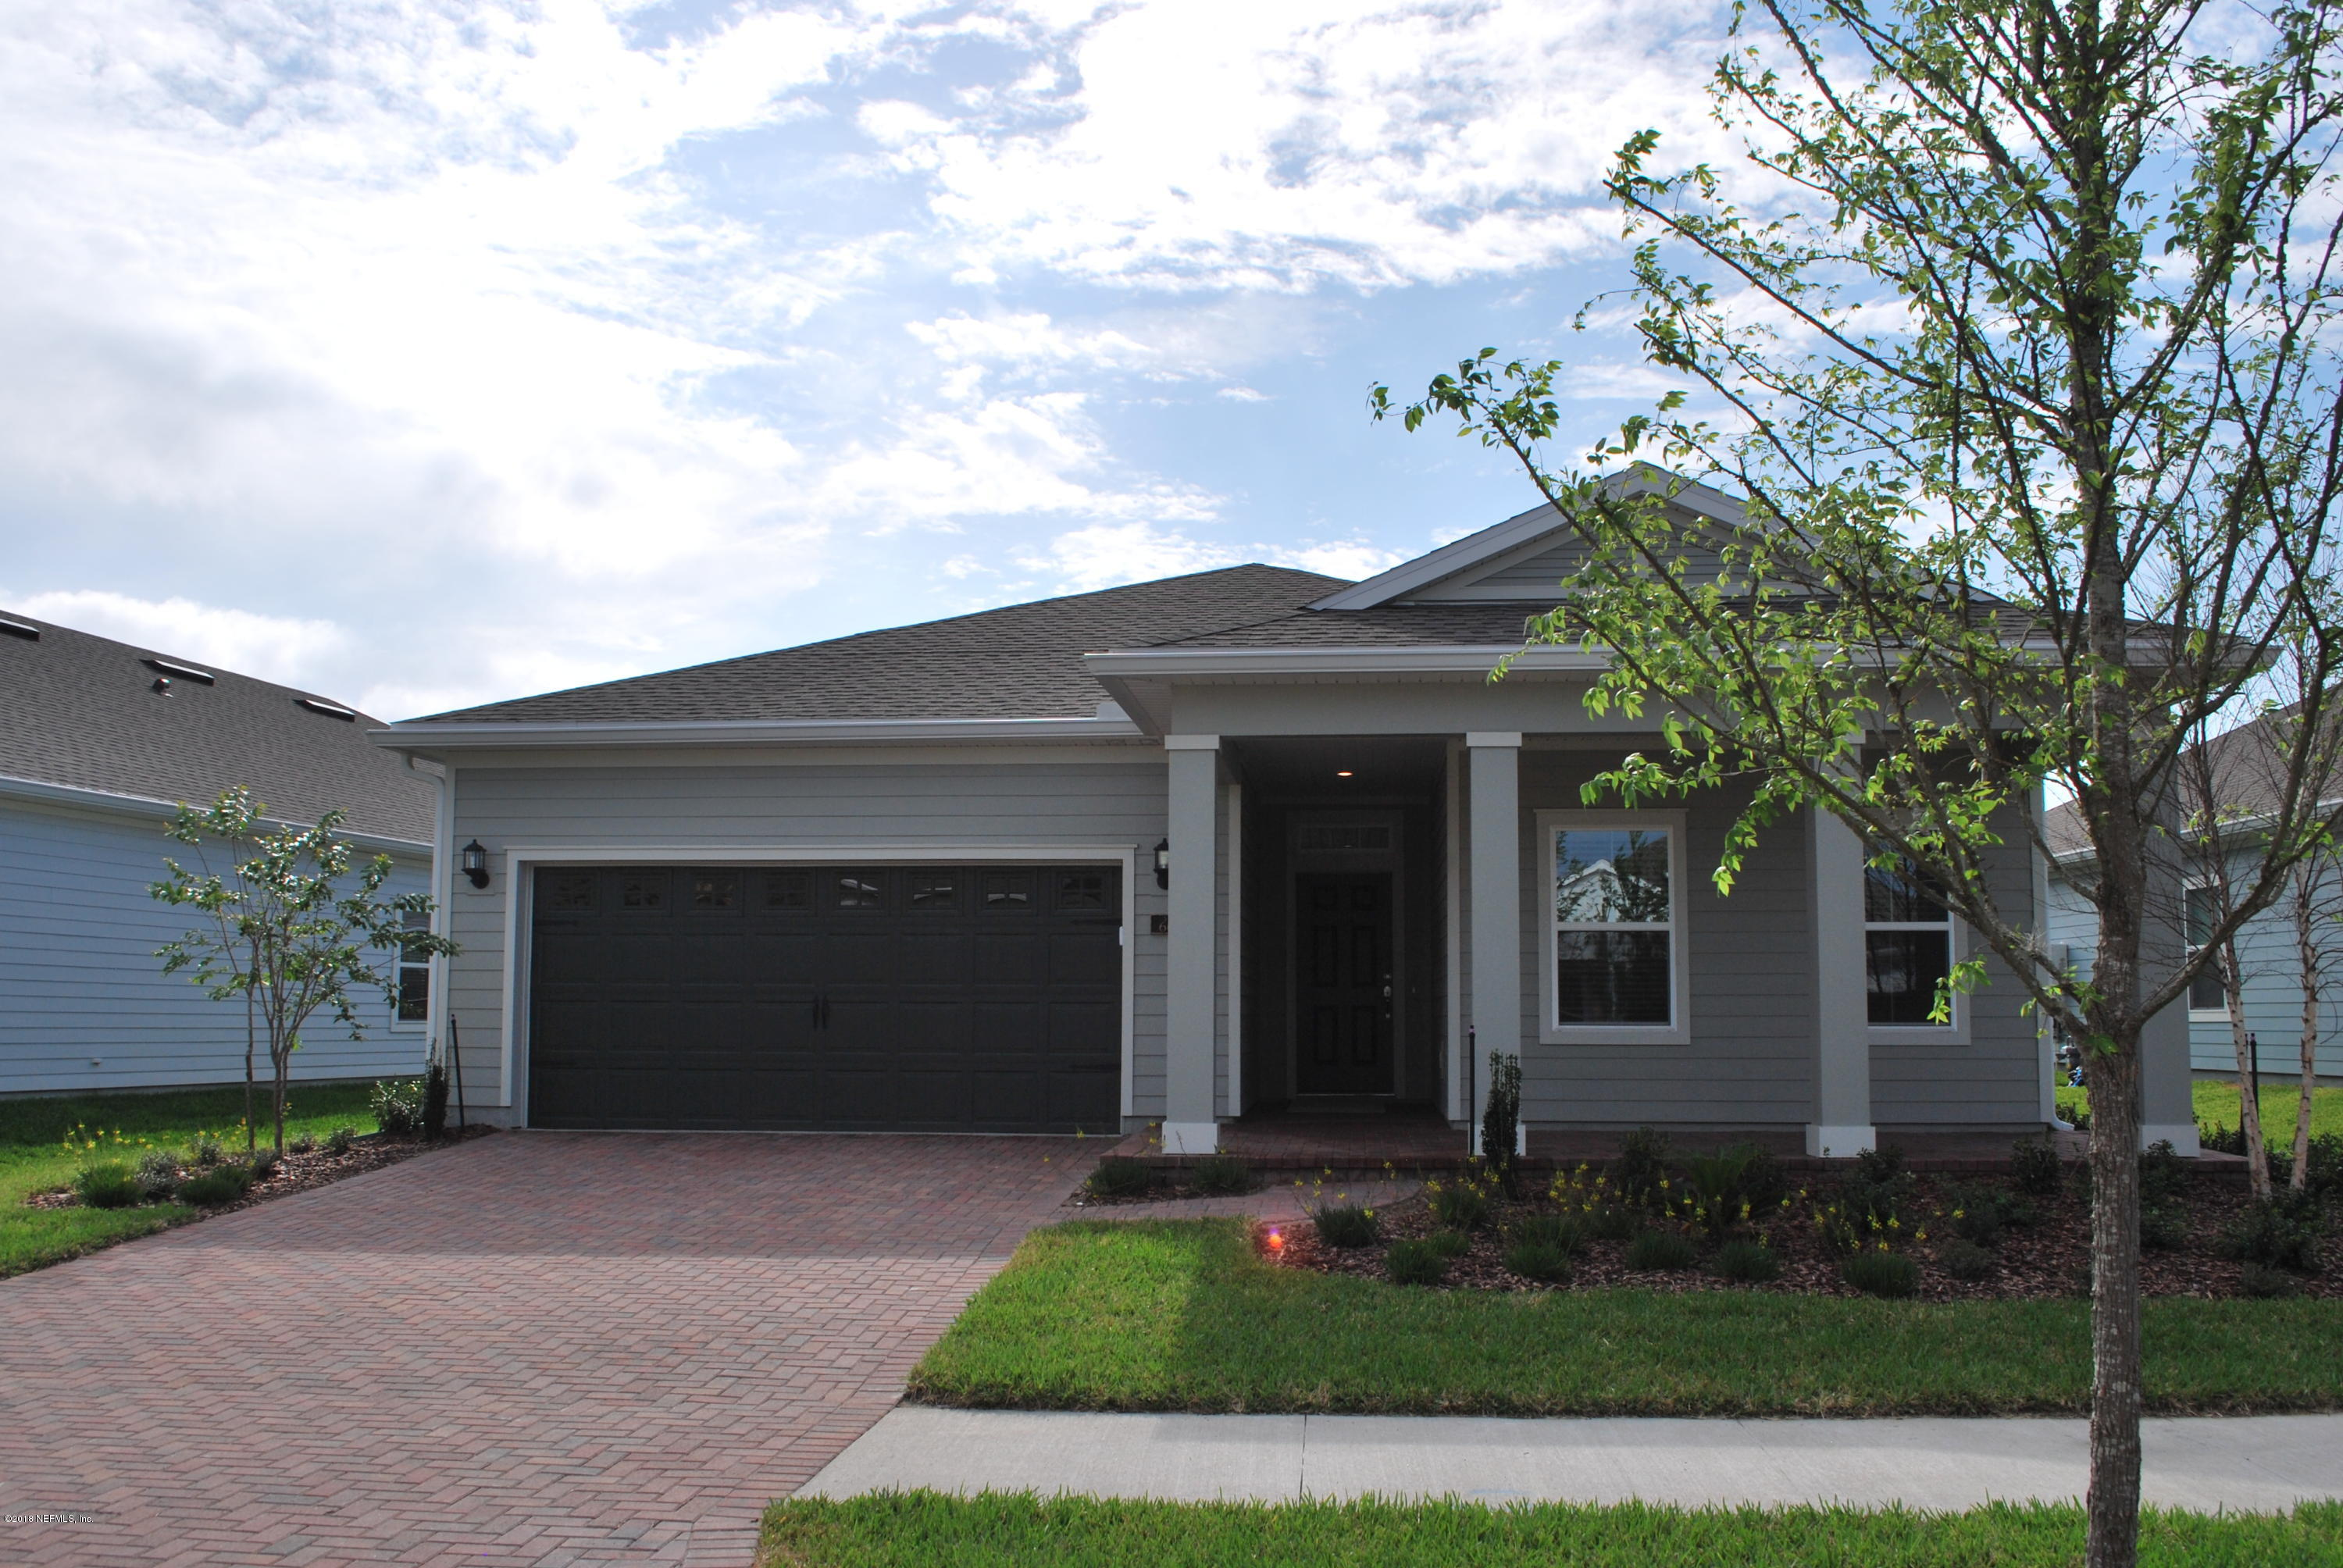 239 RIVERCLIFF, ST AUGUSTINE, FLORIDA 32092, 4 Bedrooms Bedrooms, ,3 BathroomsBathrooms,Residential - single family,For sale,RIVERCLIFF,967621